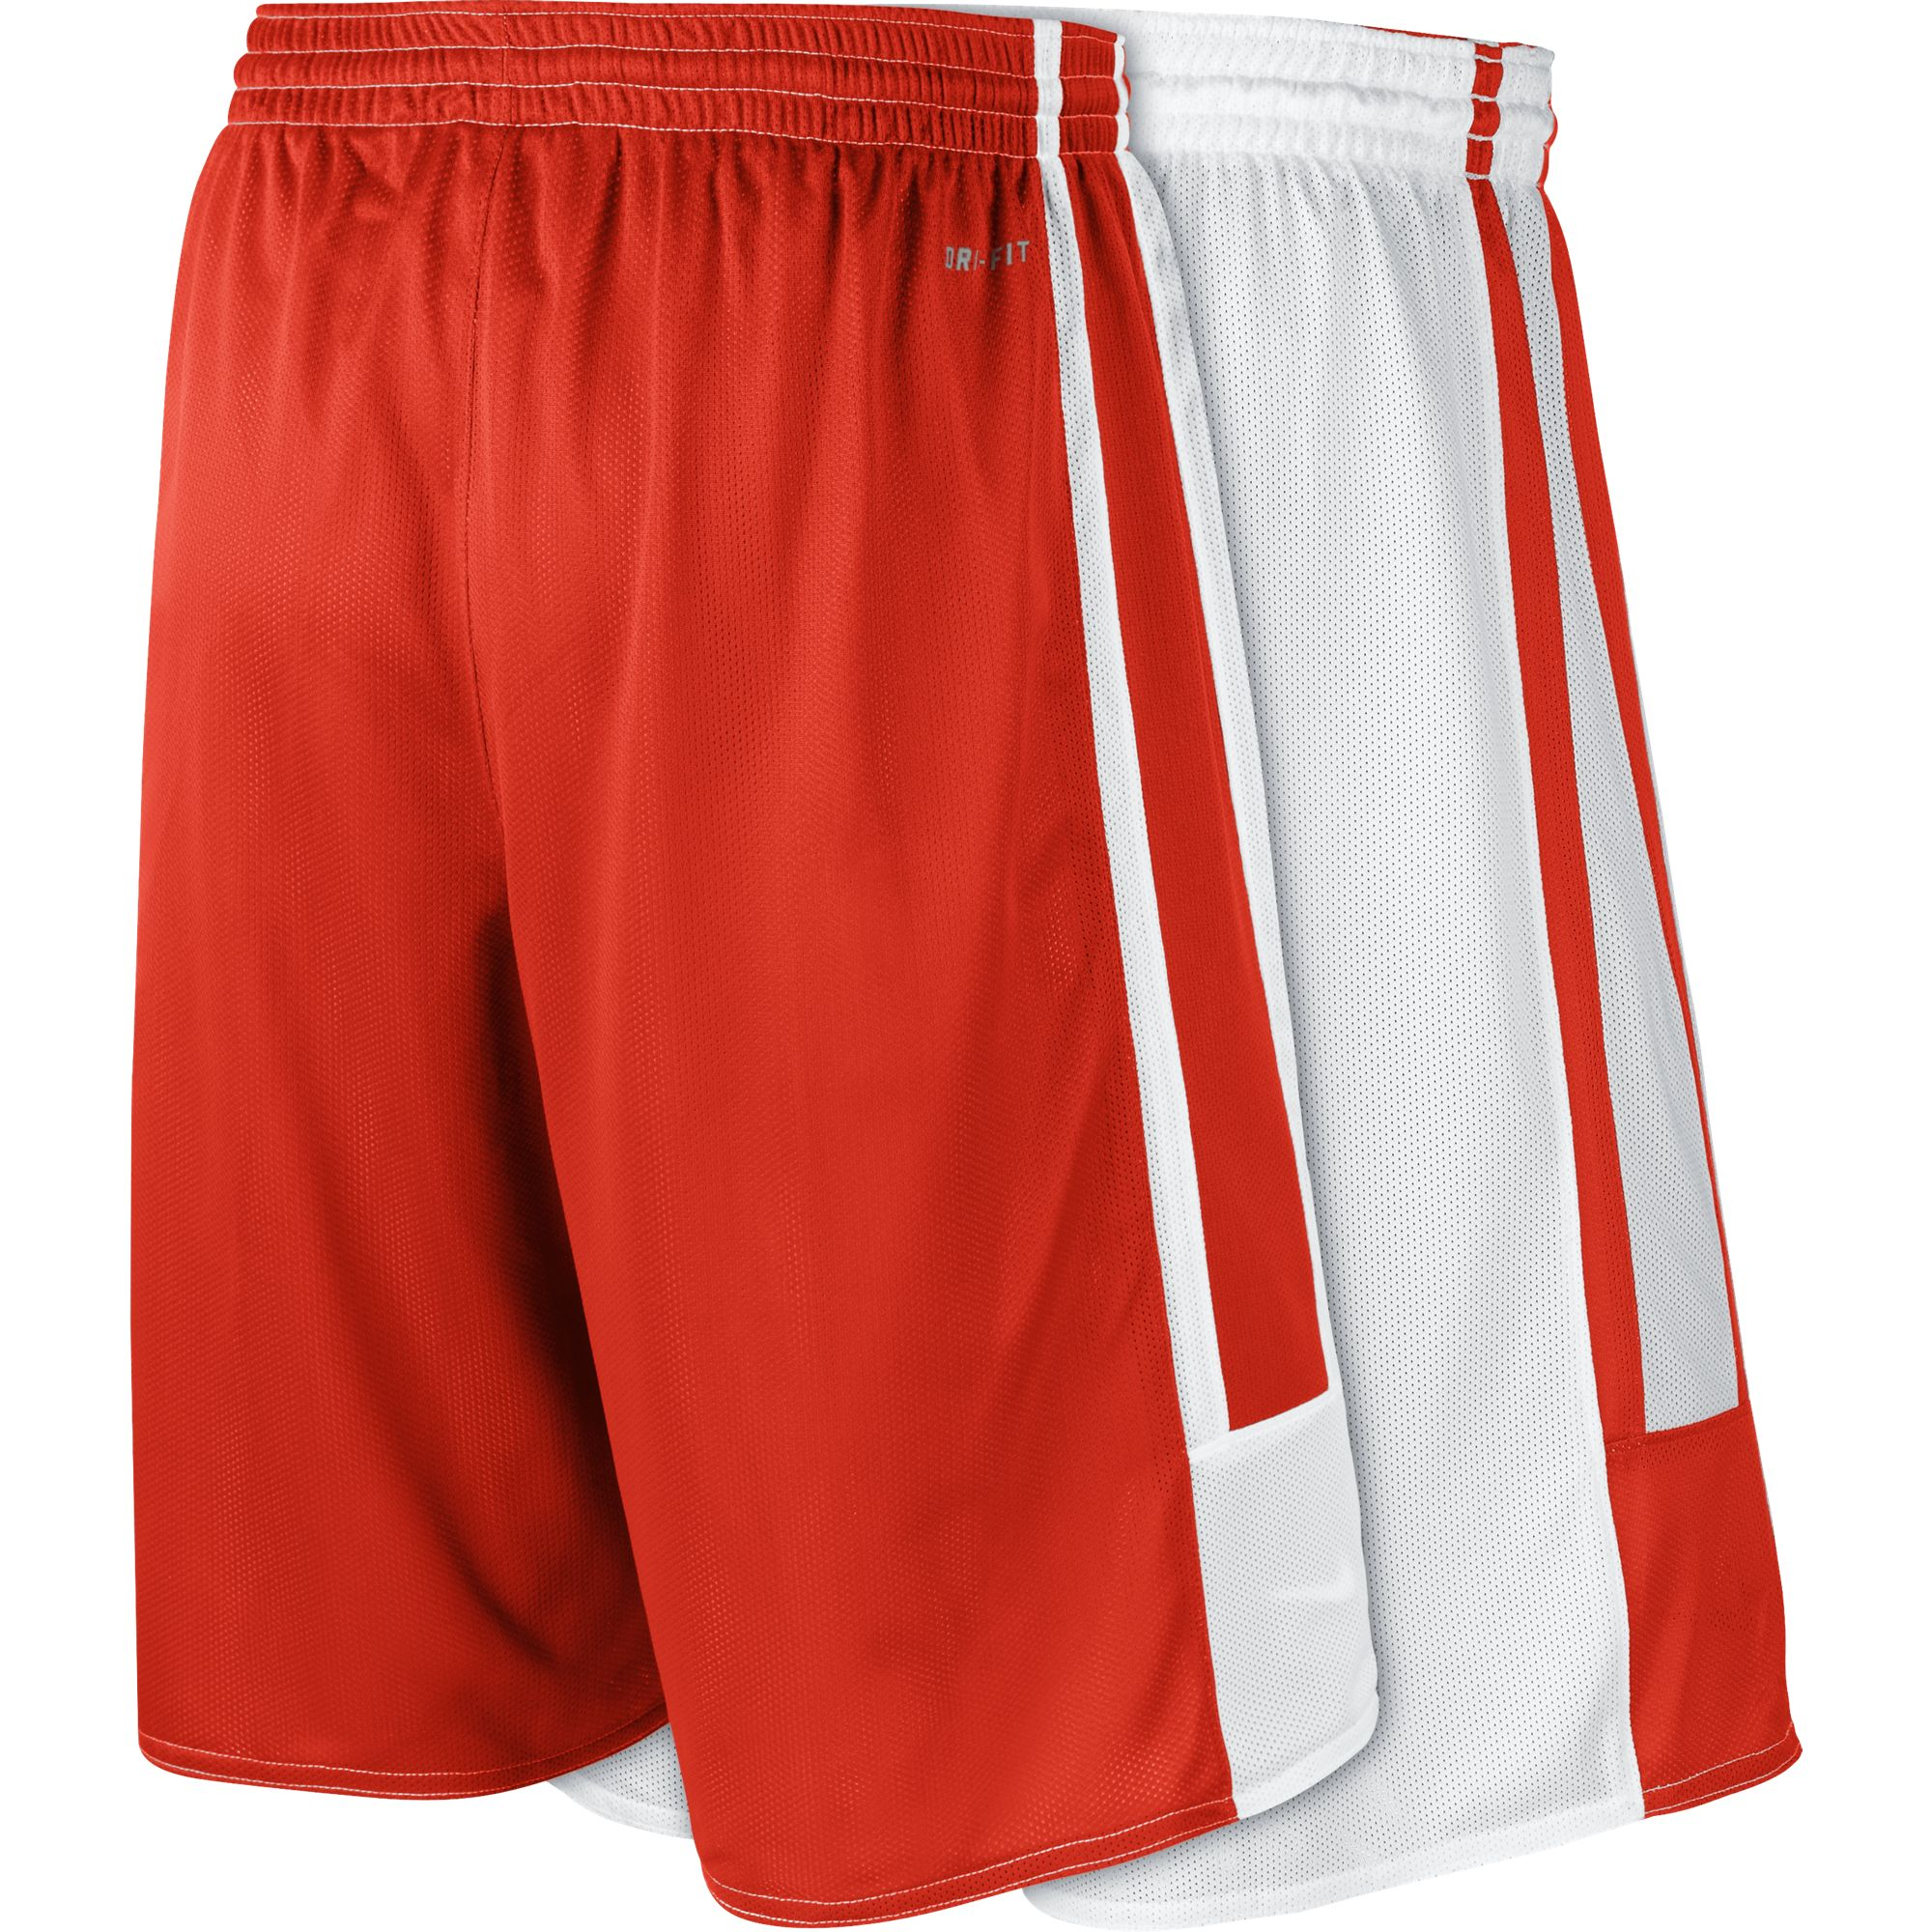 Nike Basketball Stock League Reversible Basketball Shorts - Team Scarlet/Team White